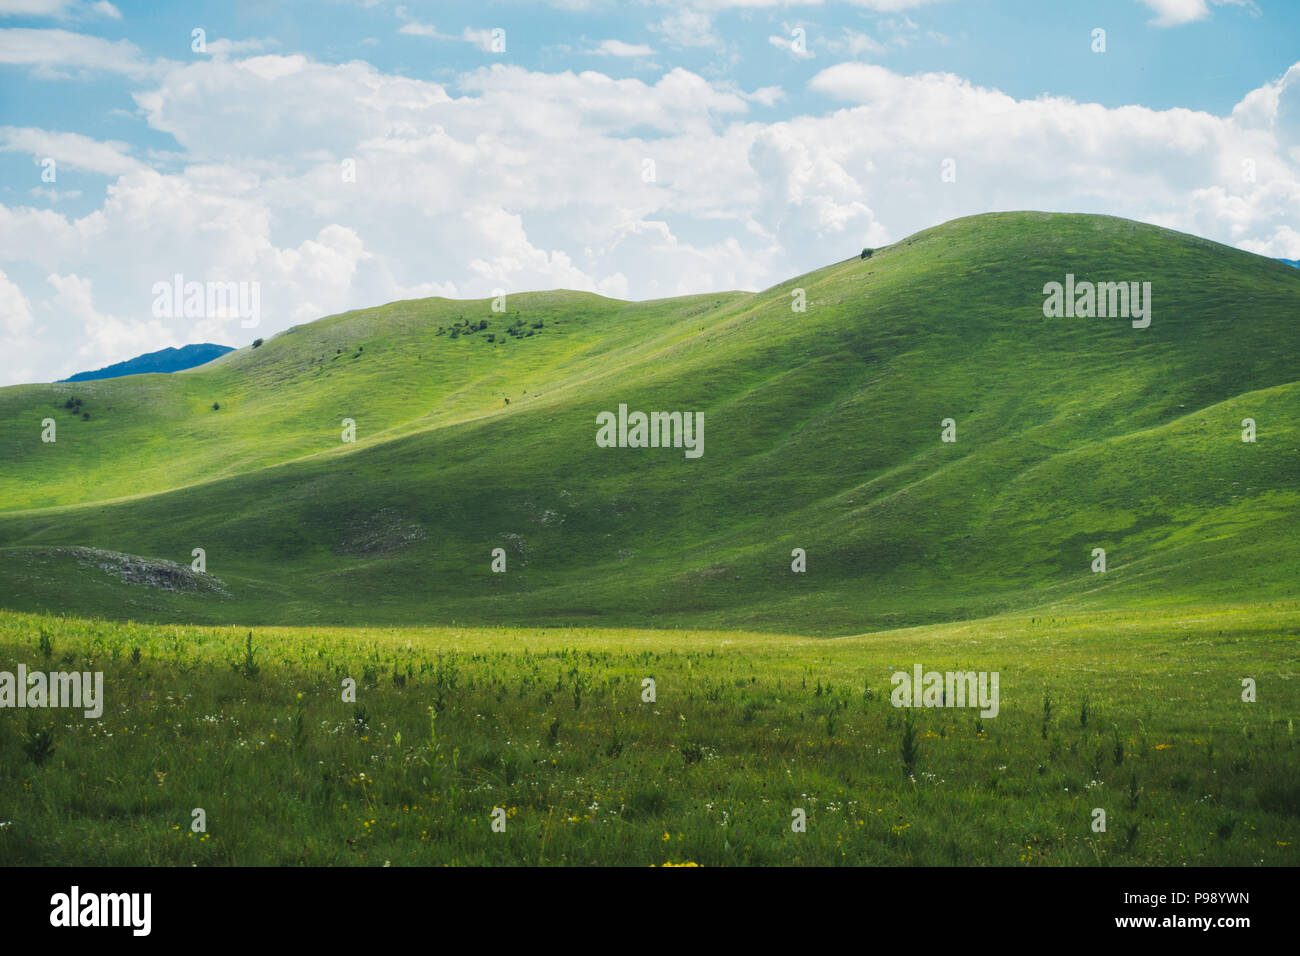 rolling green grassy hills in Europe, reminiscent of the famous Windows XP desktop background Stock Photo